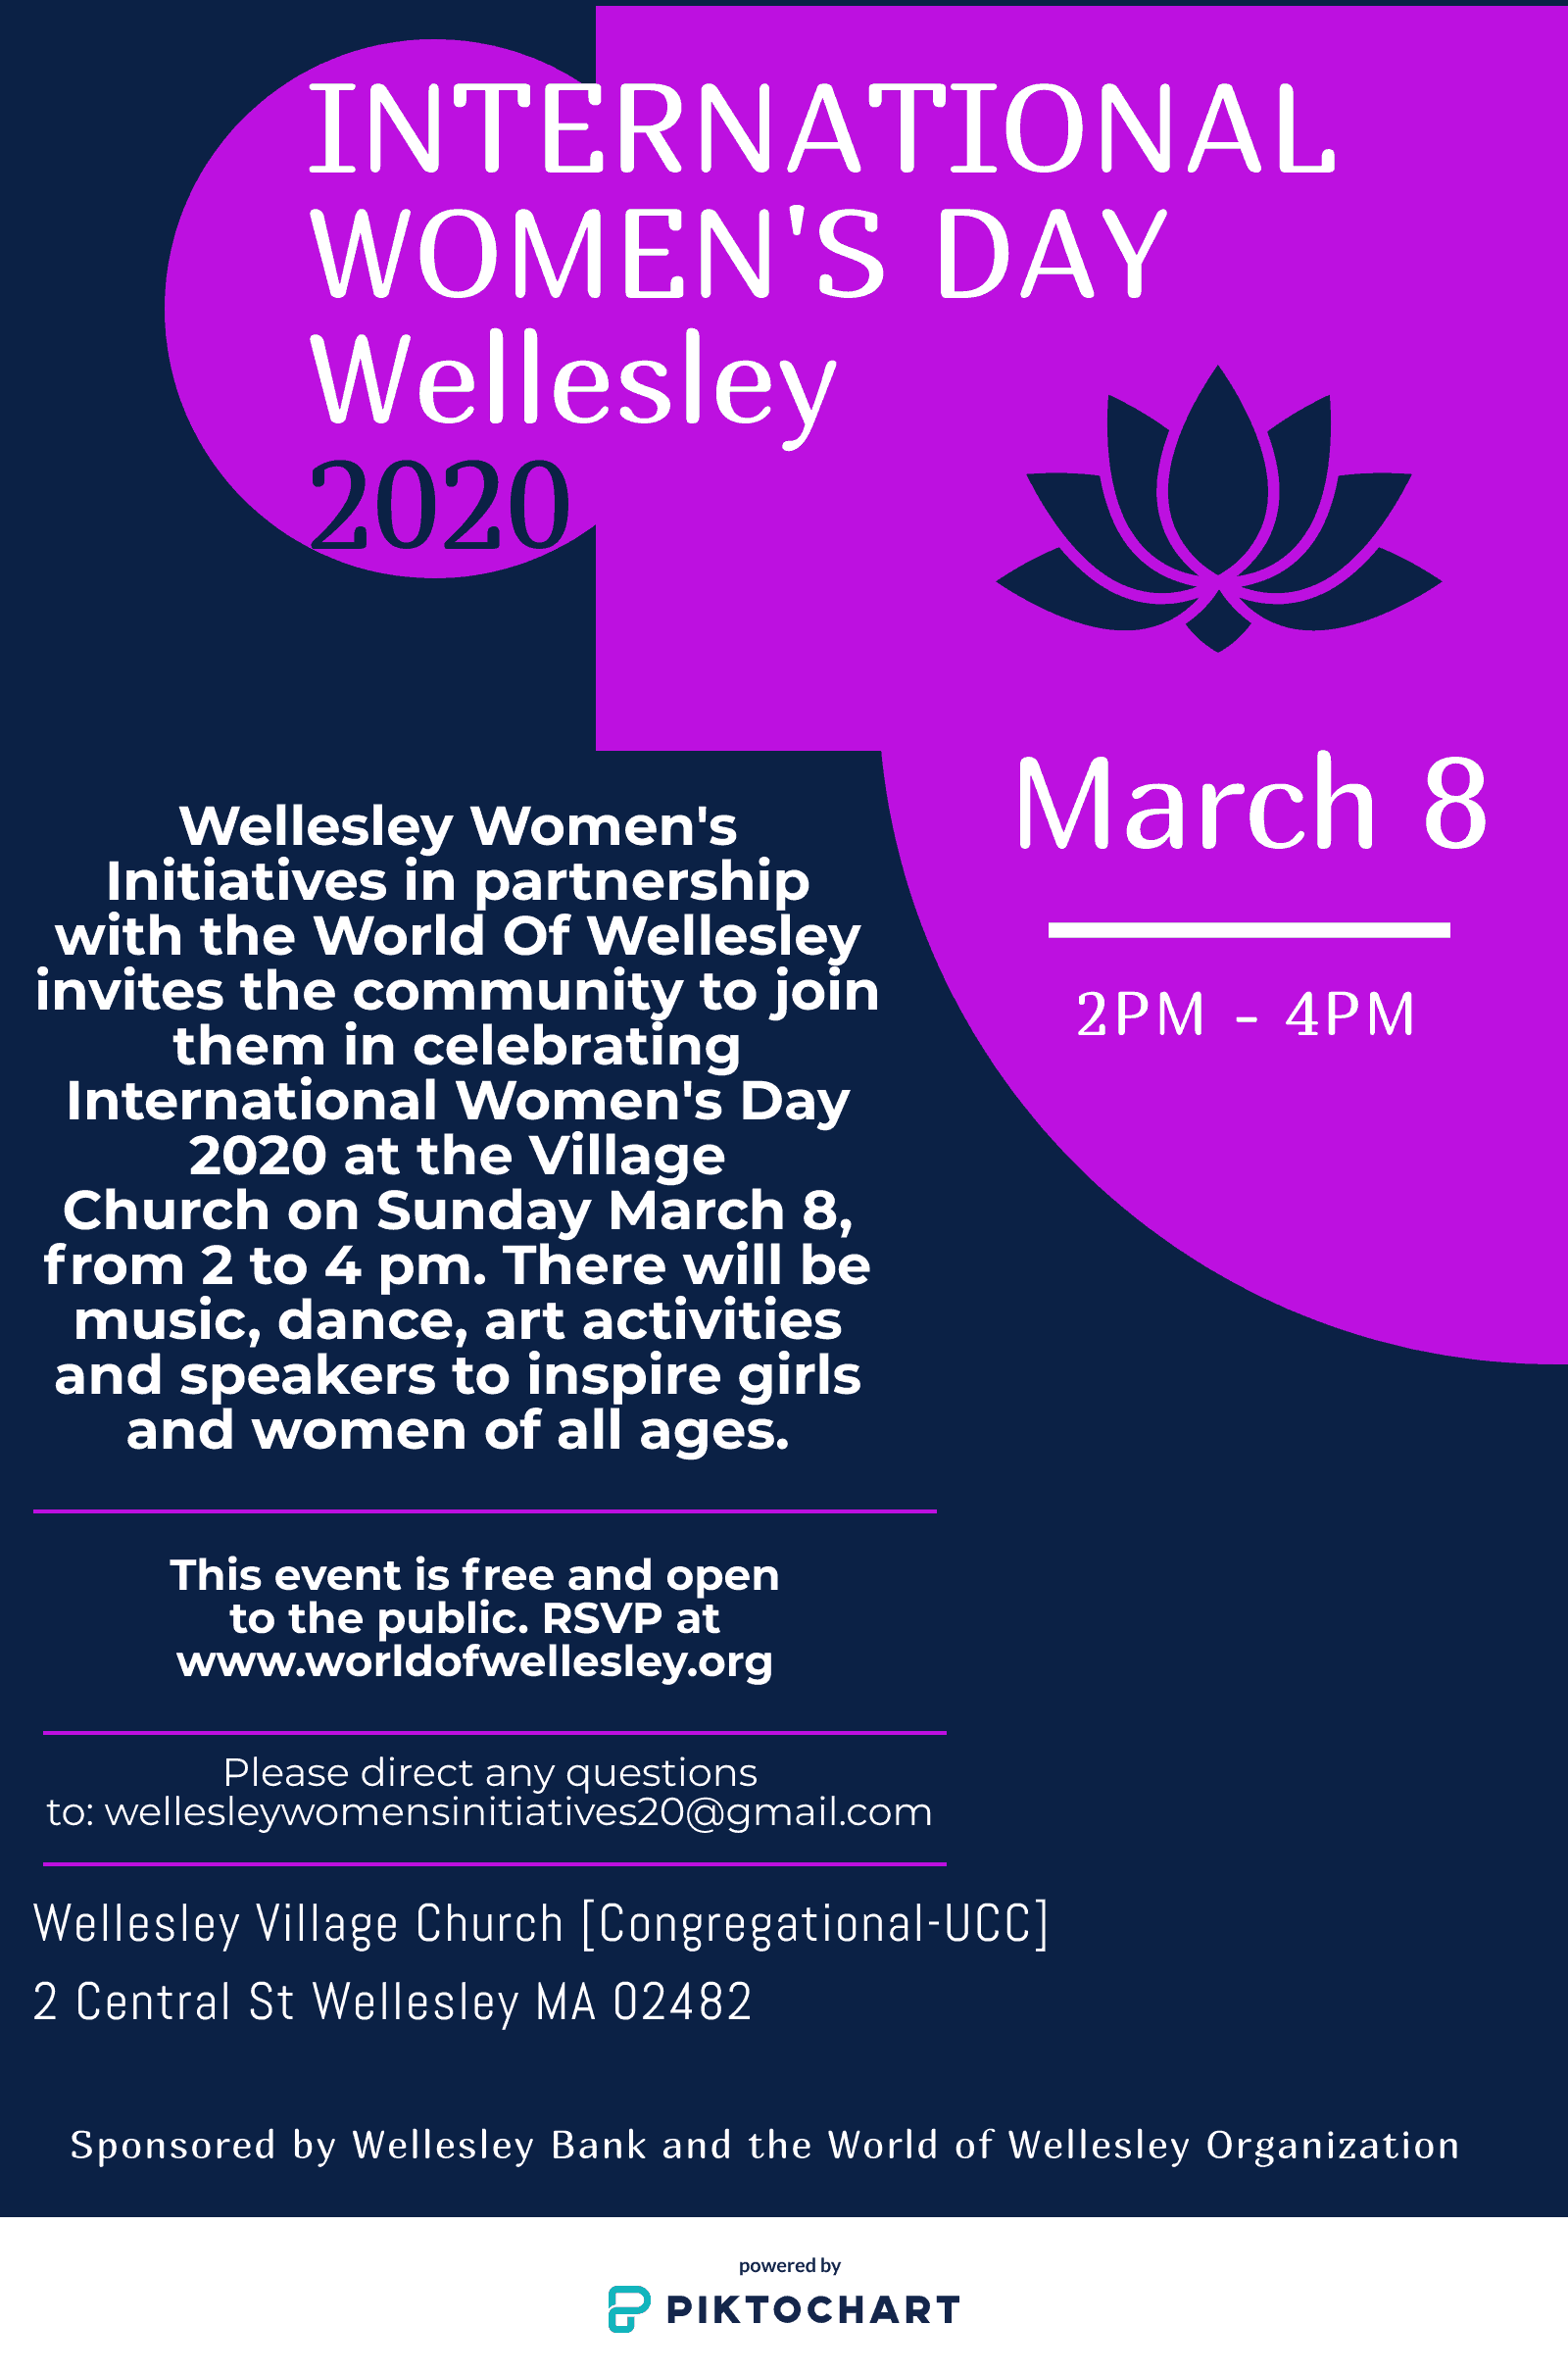 international-womens-day-wellesley-2020